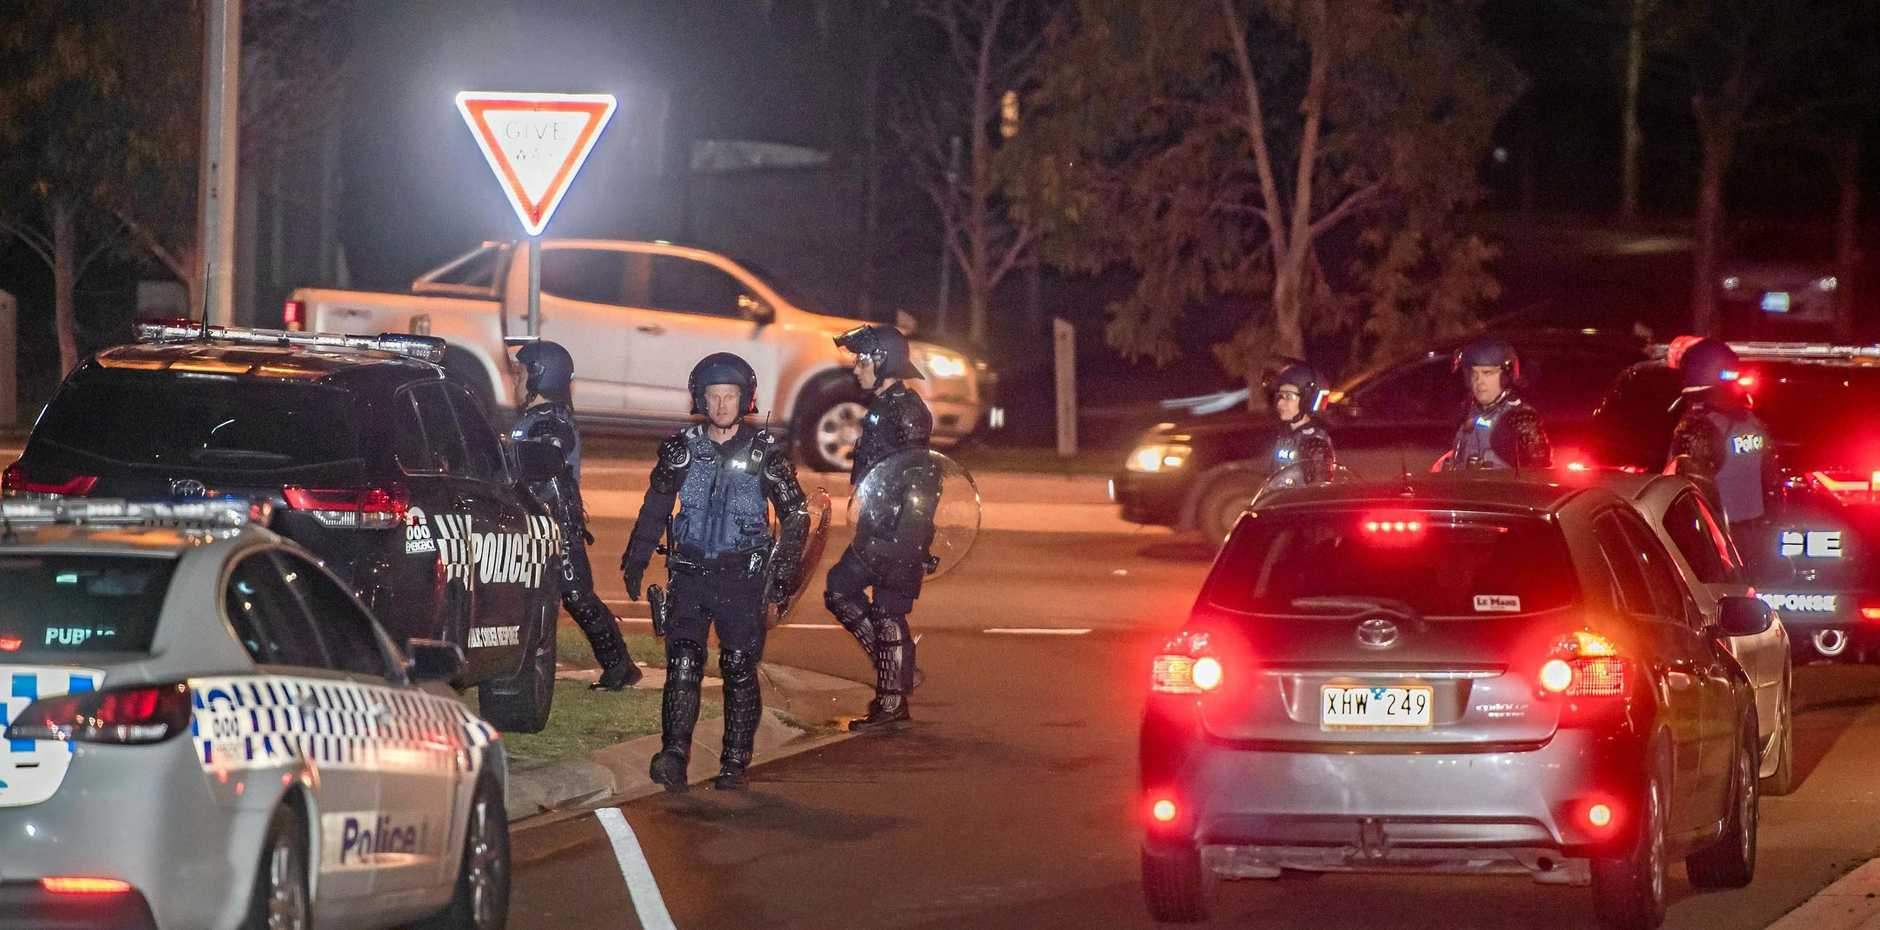 POLICE PRESENCE: Dozens of police, including some in riot gear, gather in Taylors Hill, Melbourne, after a large group of youths wreaked havoc in the area.